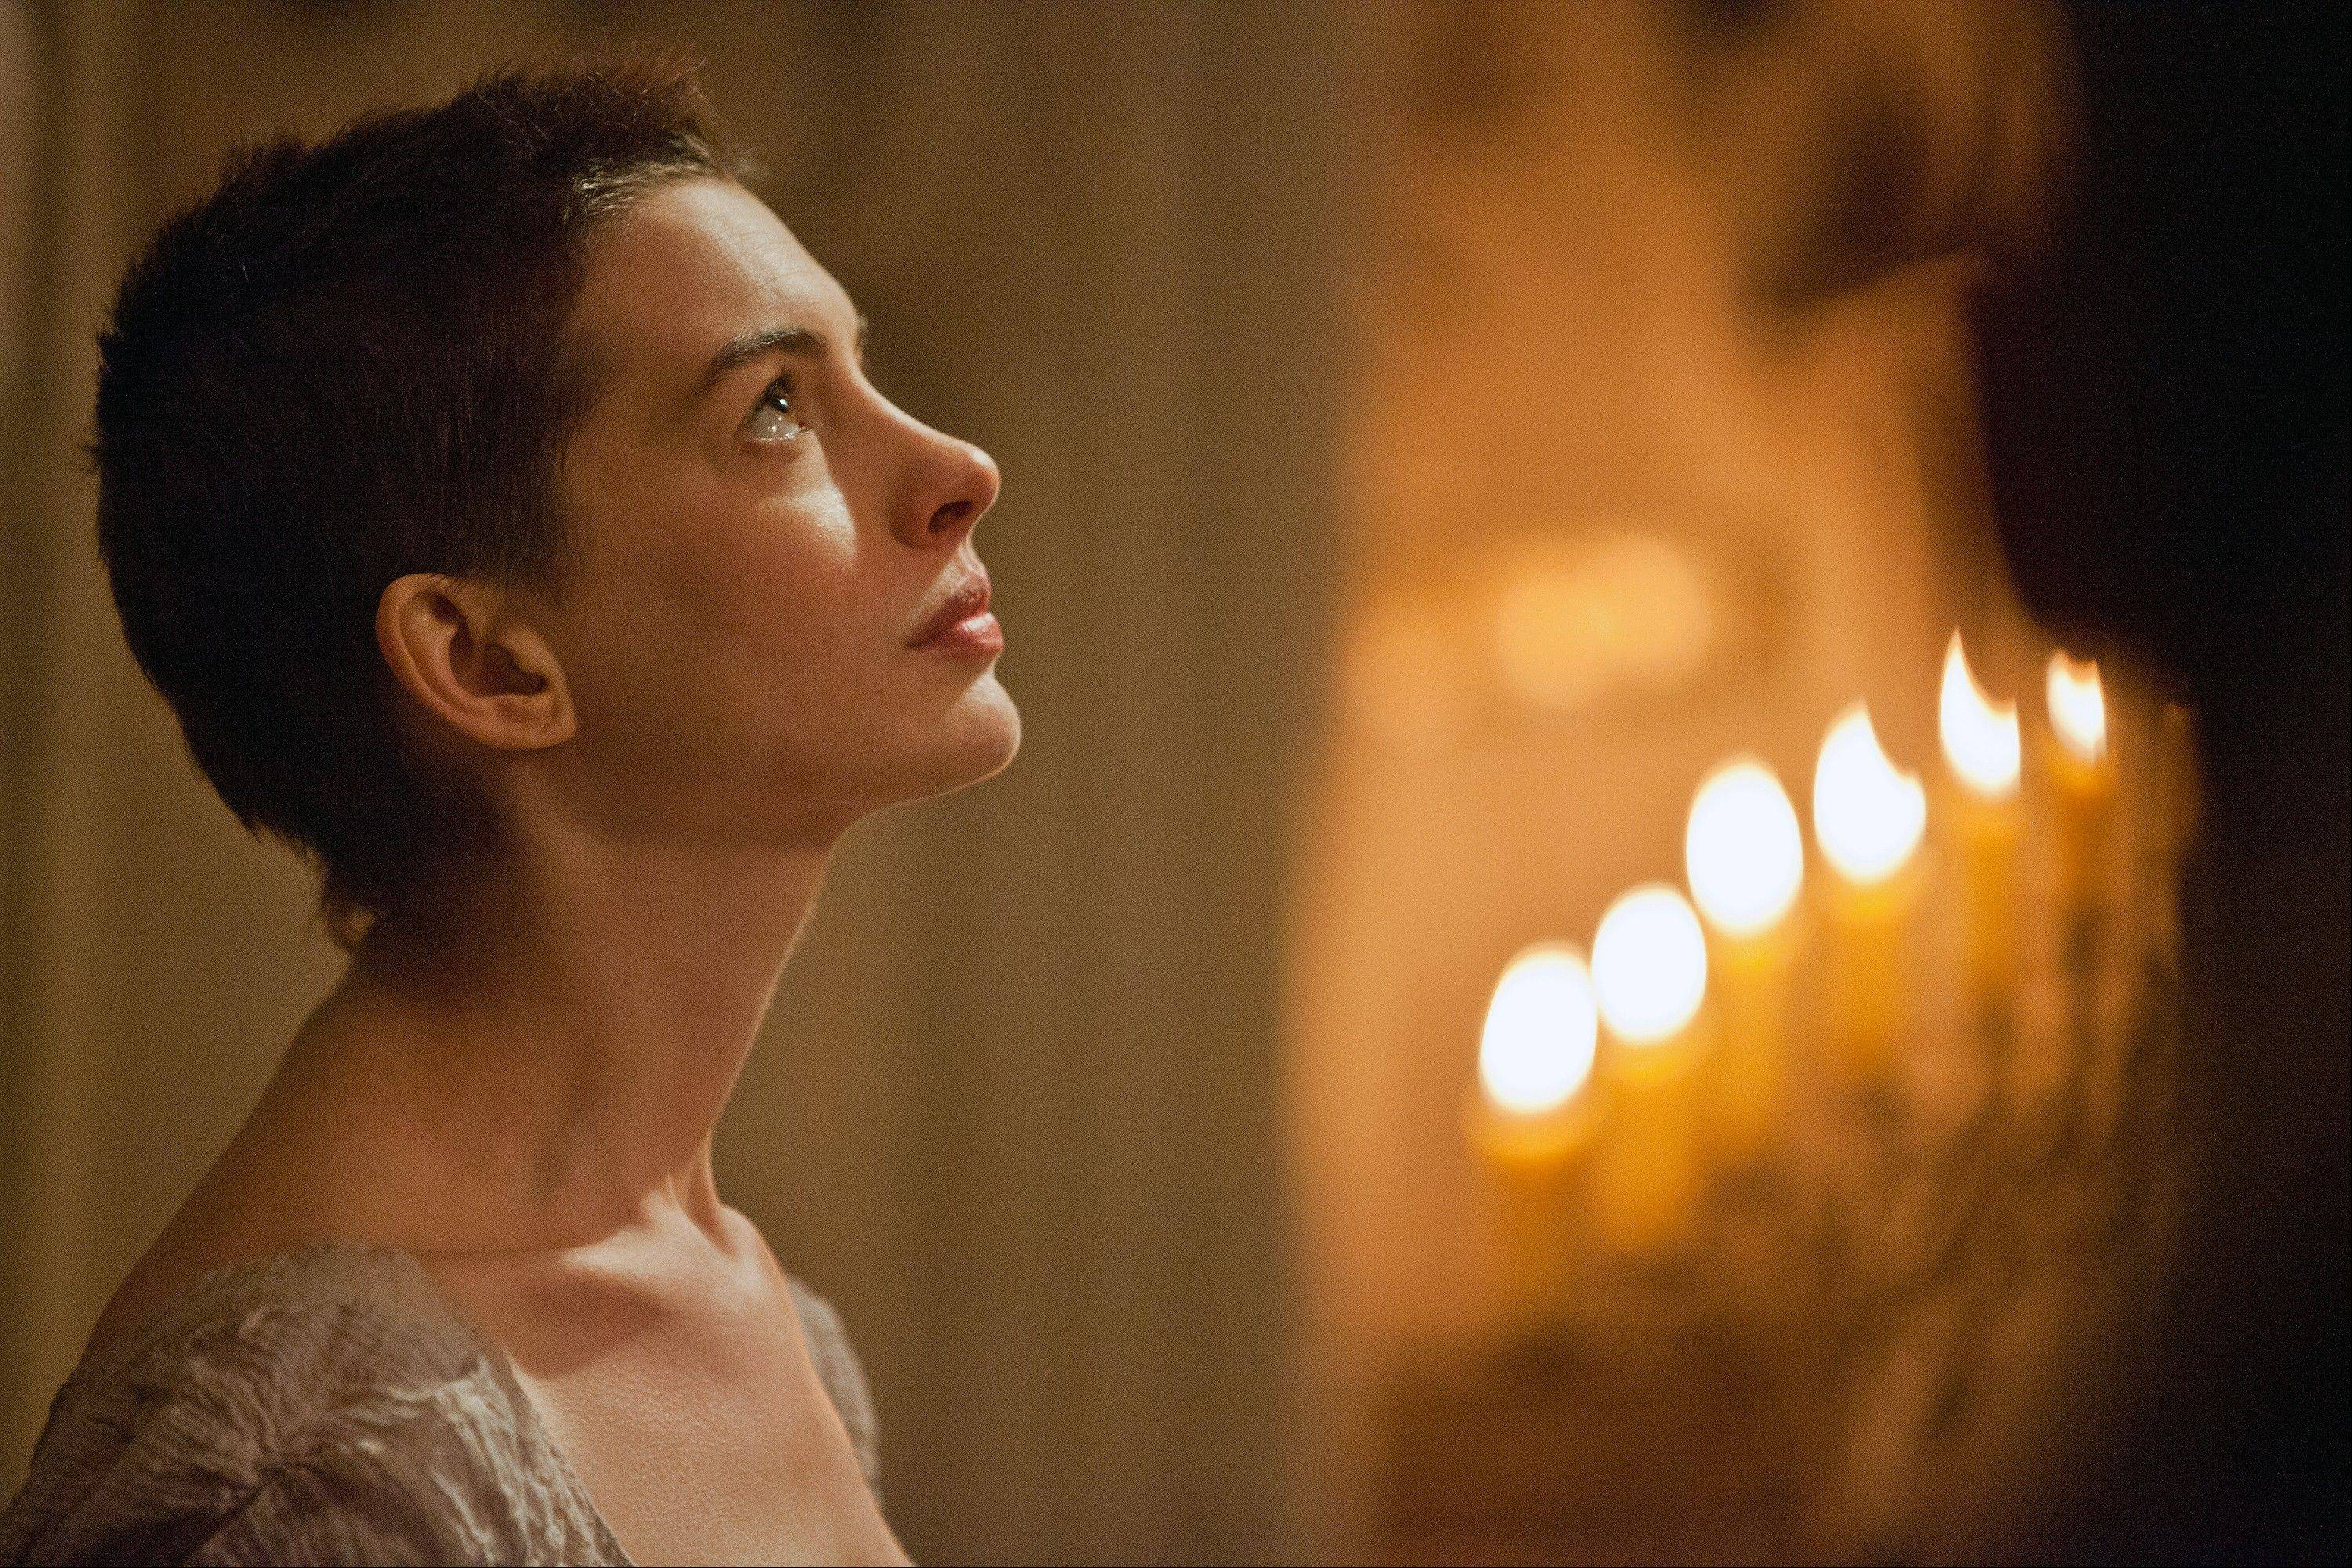 This film image released by Universal Pictures shows actress Anne Hathaway portraying Fantine, a struggling, sickly mother forced into prostitution in 1800s Paris, in a scene from the screen adaptation of �Les Miserables.�